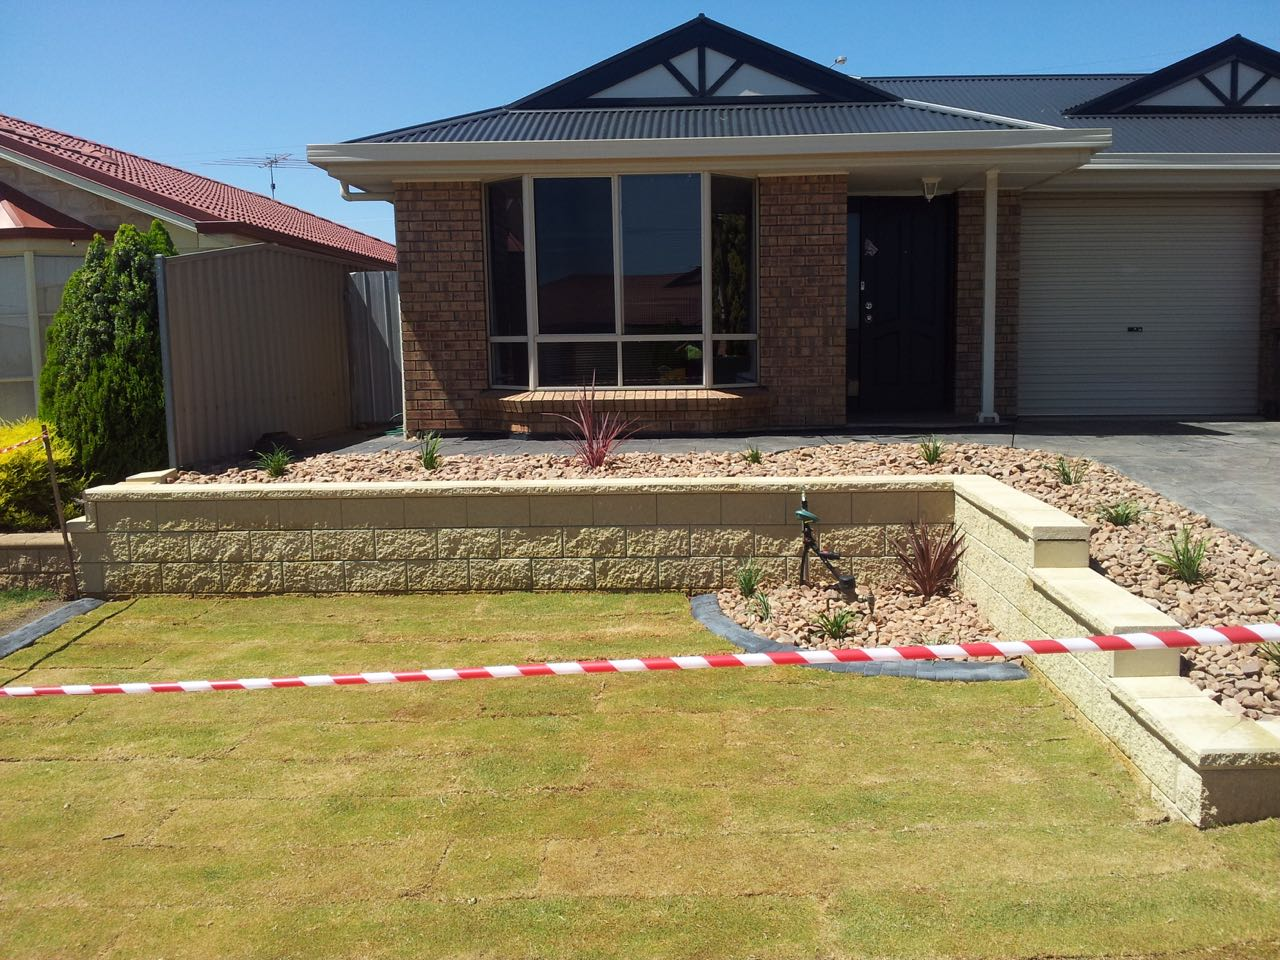 Craigmore - Retaining Wall Feature for Front Entrance